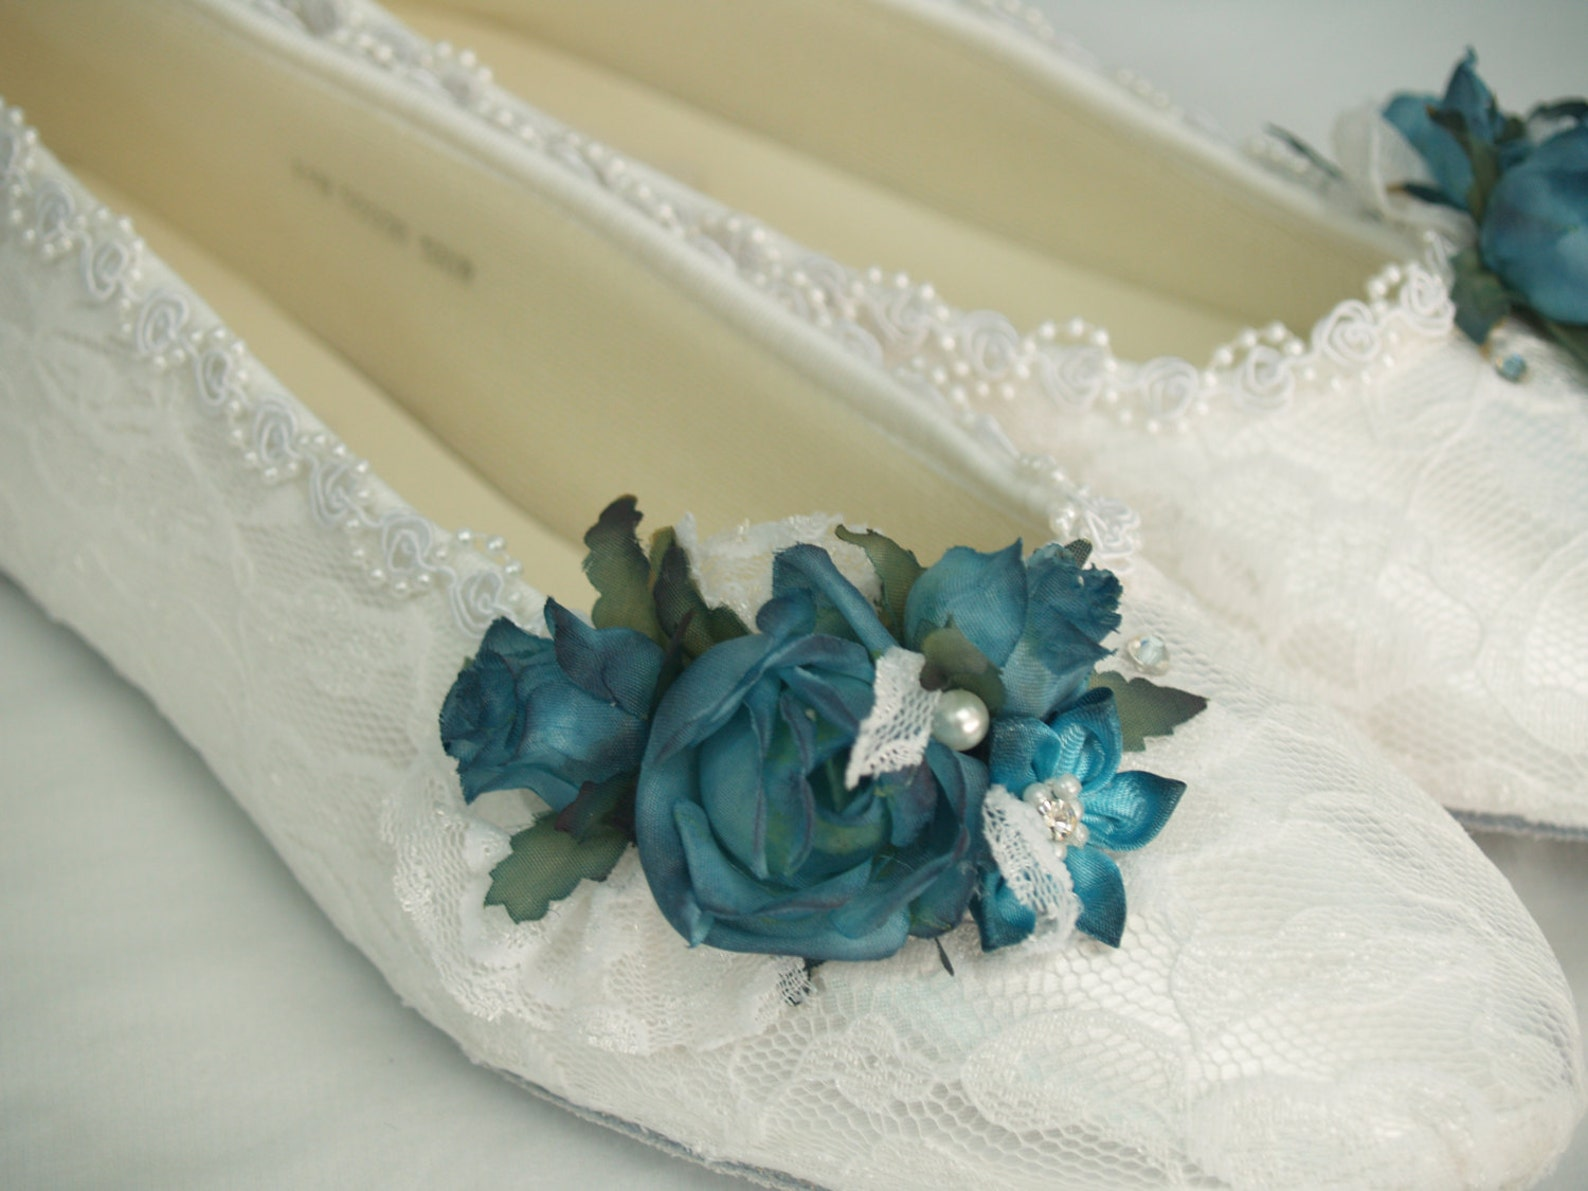 lace bridal flats teal flowers adornment over white lace,wedding flats, ballet style slipper, lace, teal peacock blue flowers, r